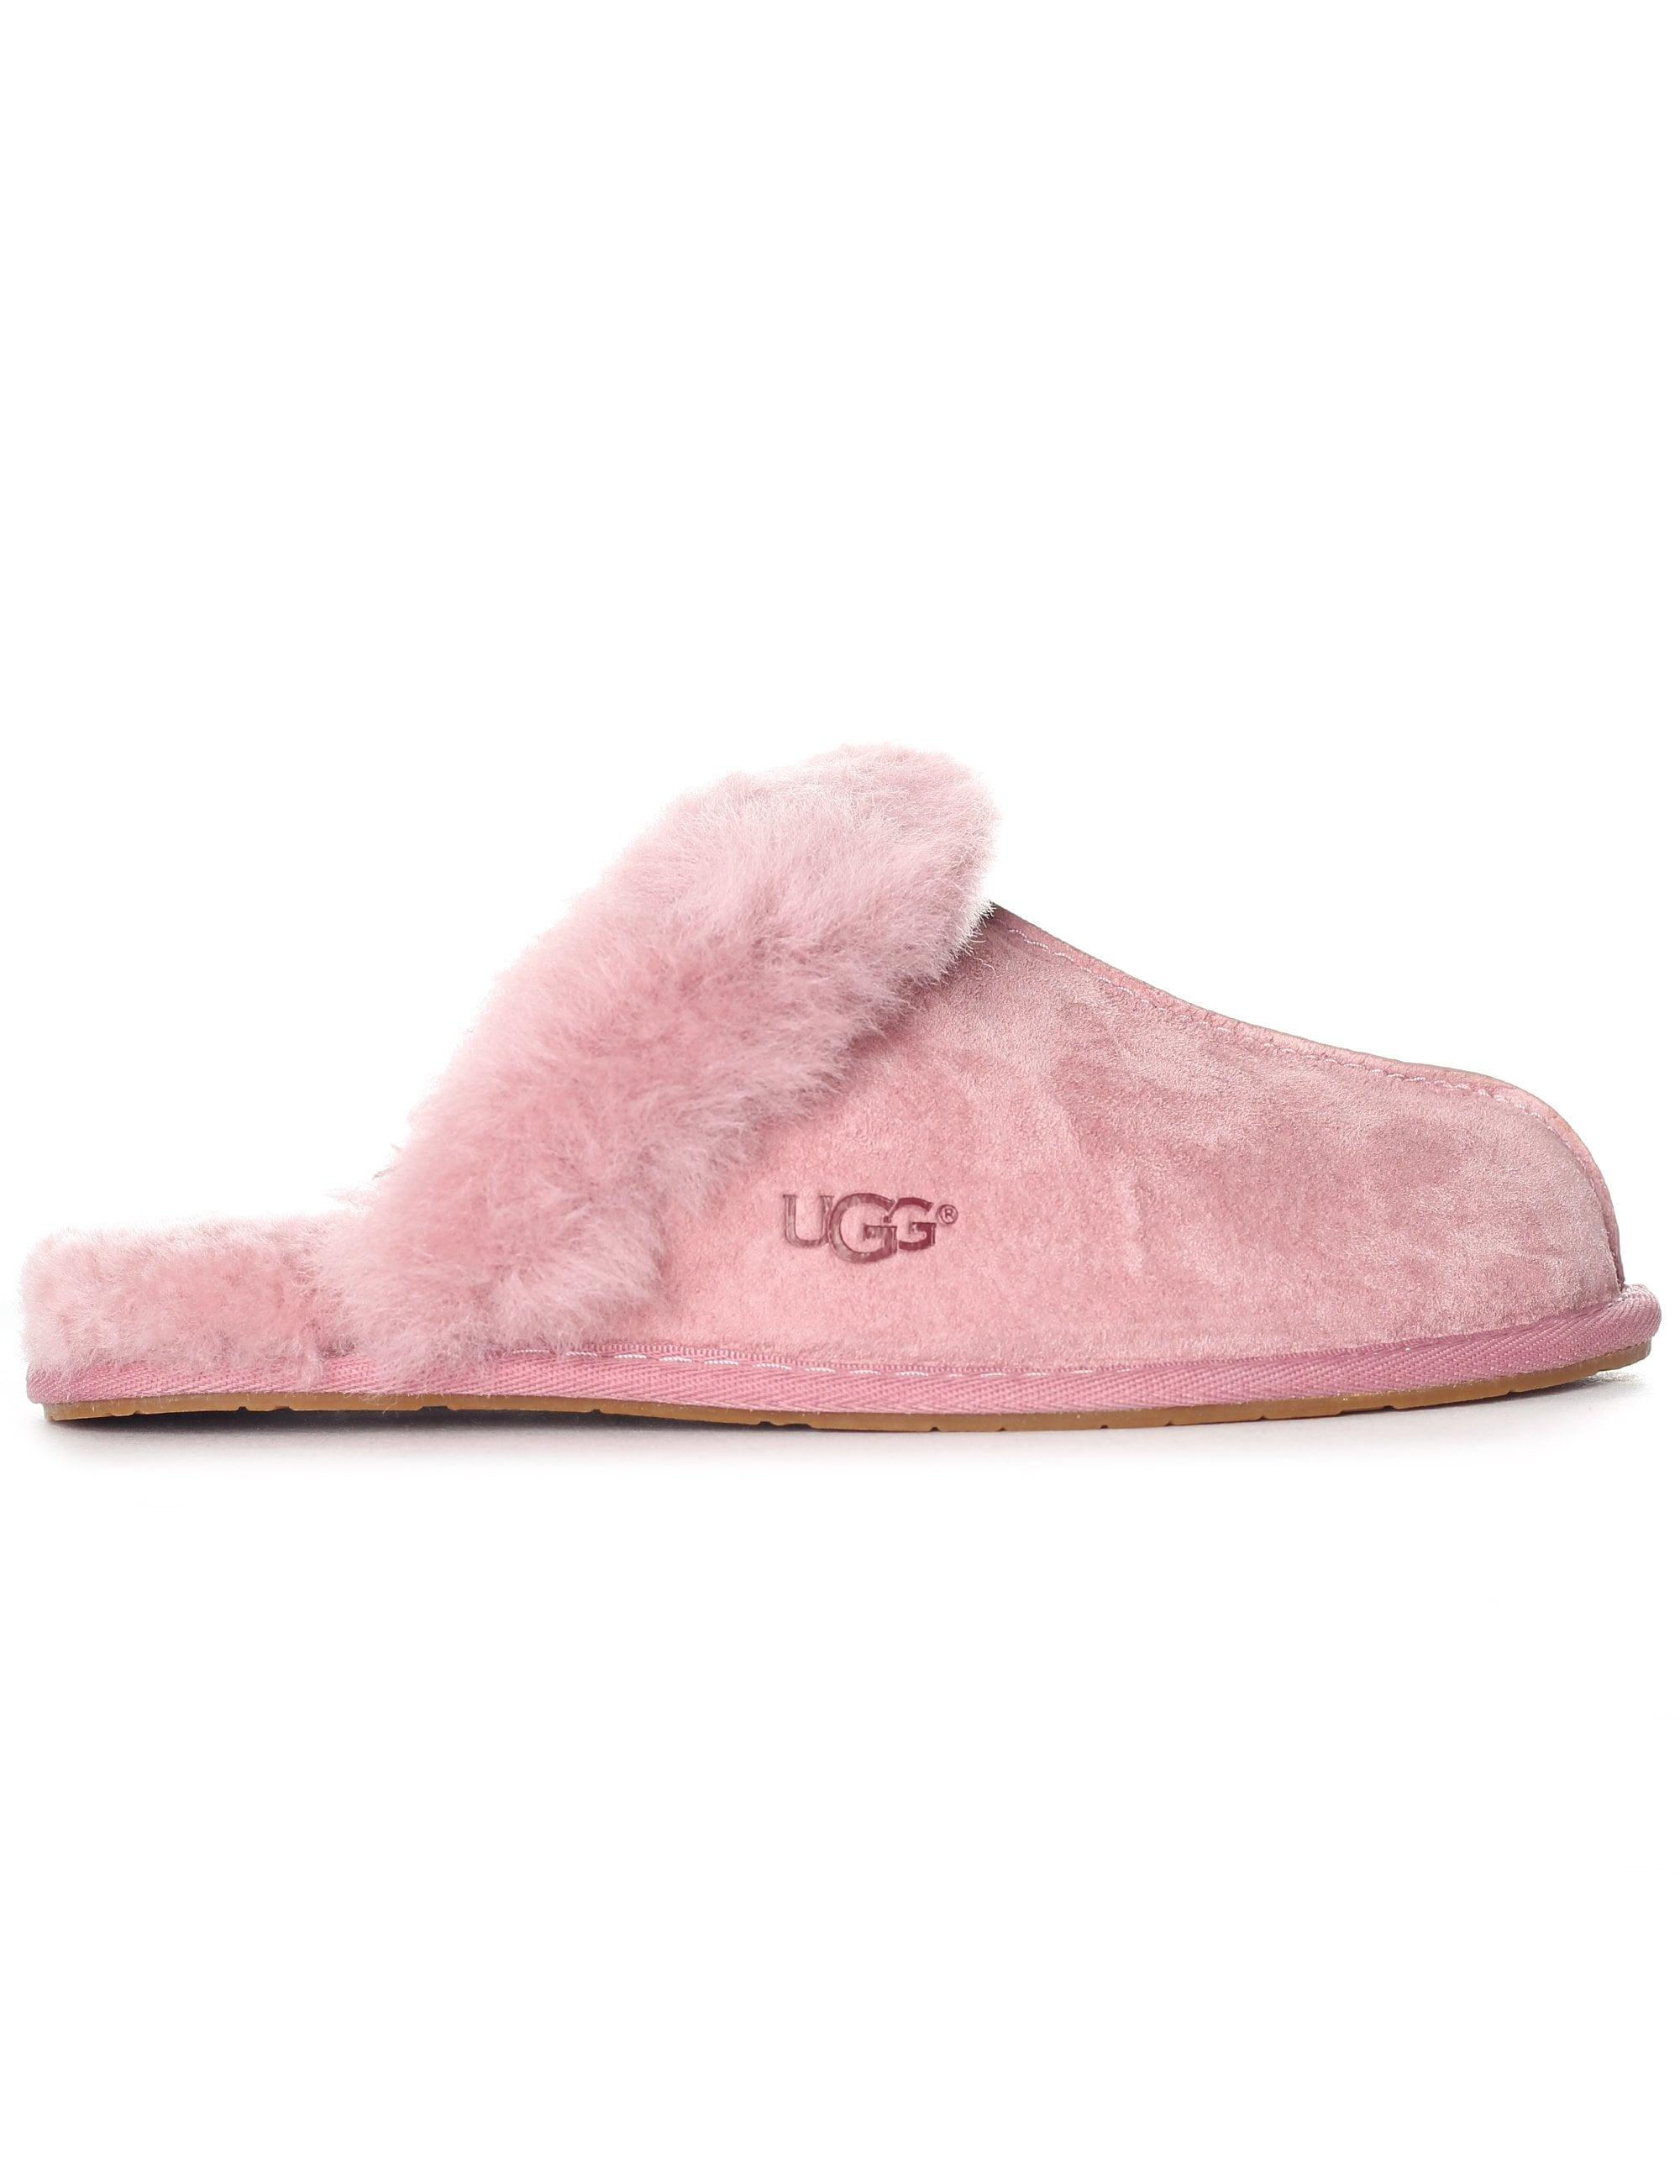 7971c33e19a UGG Scuffette Ll Slippers in Pink - Lyst